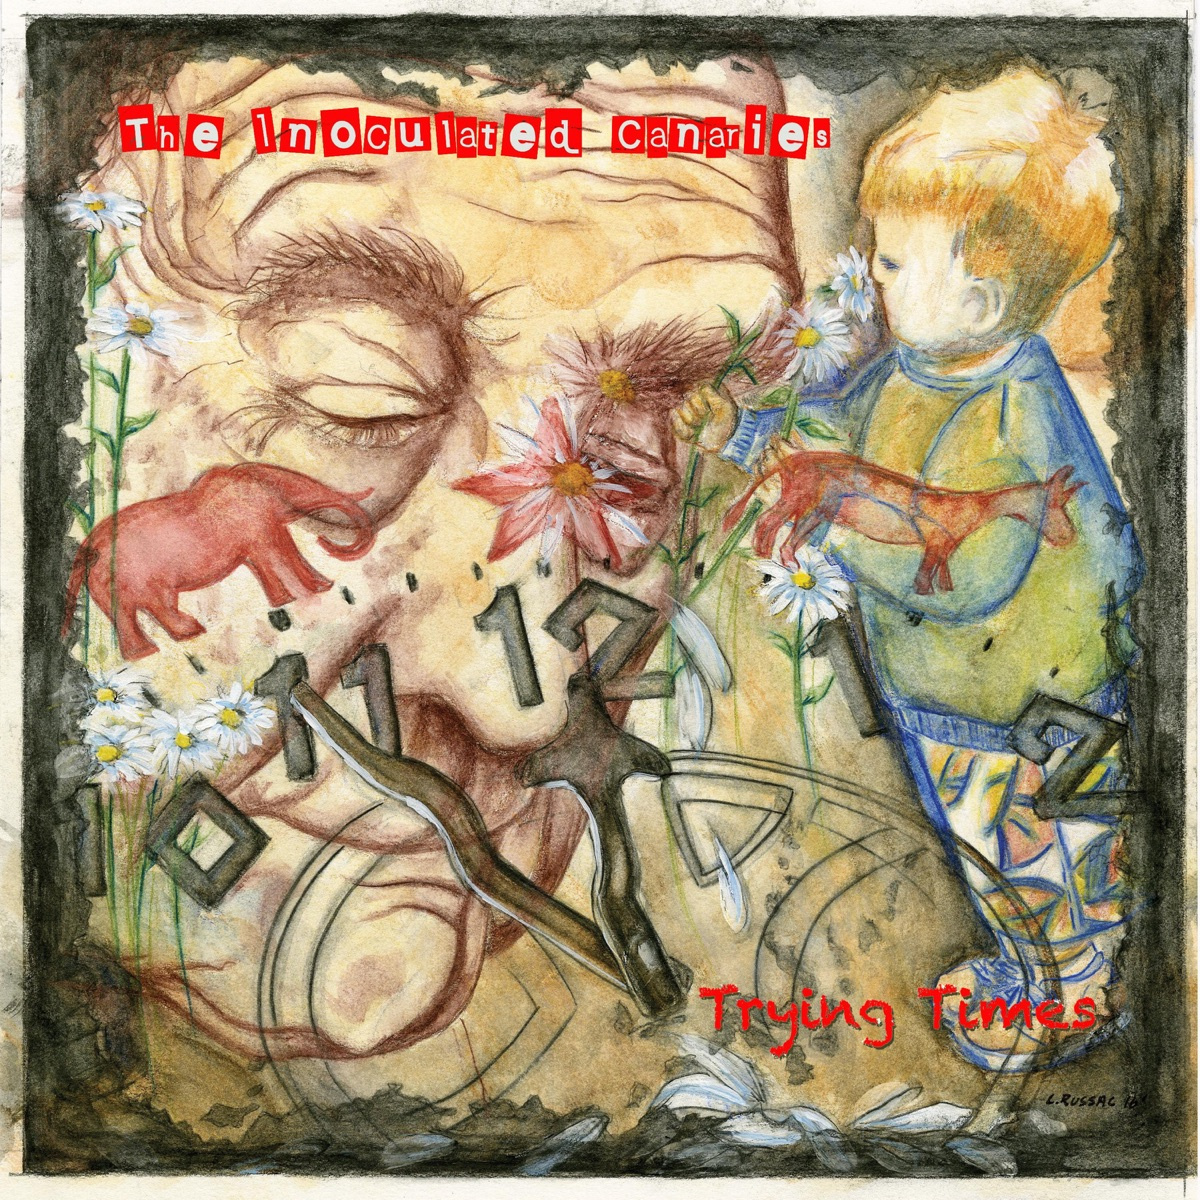 Trying Times - EP The Inoculated Canaries CD cover